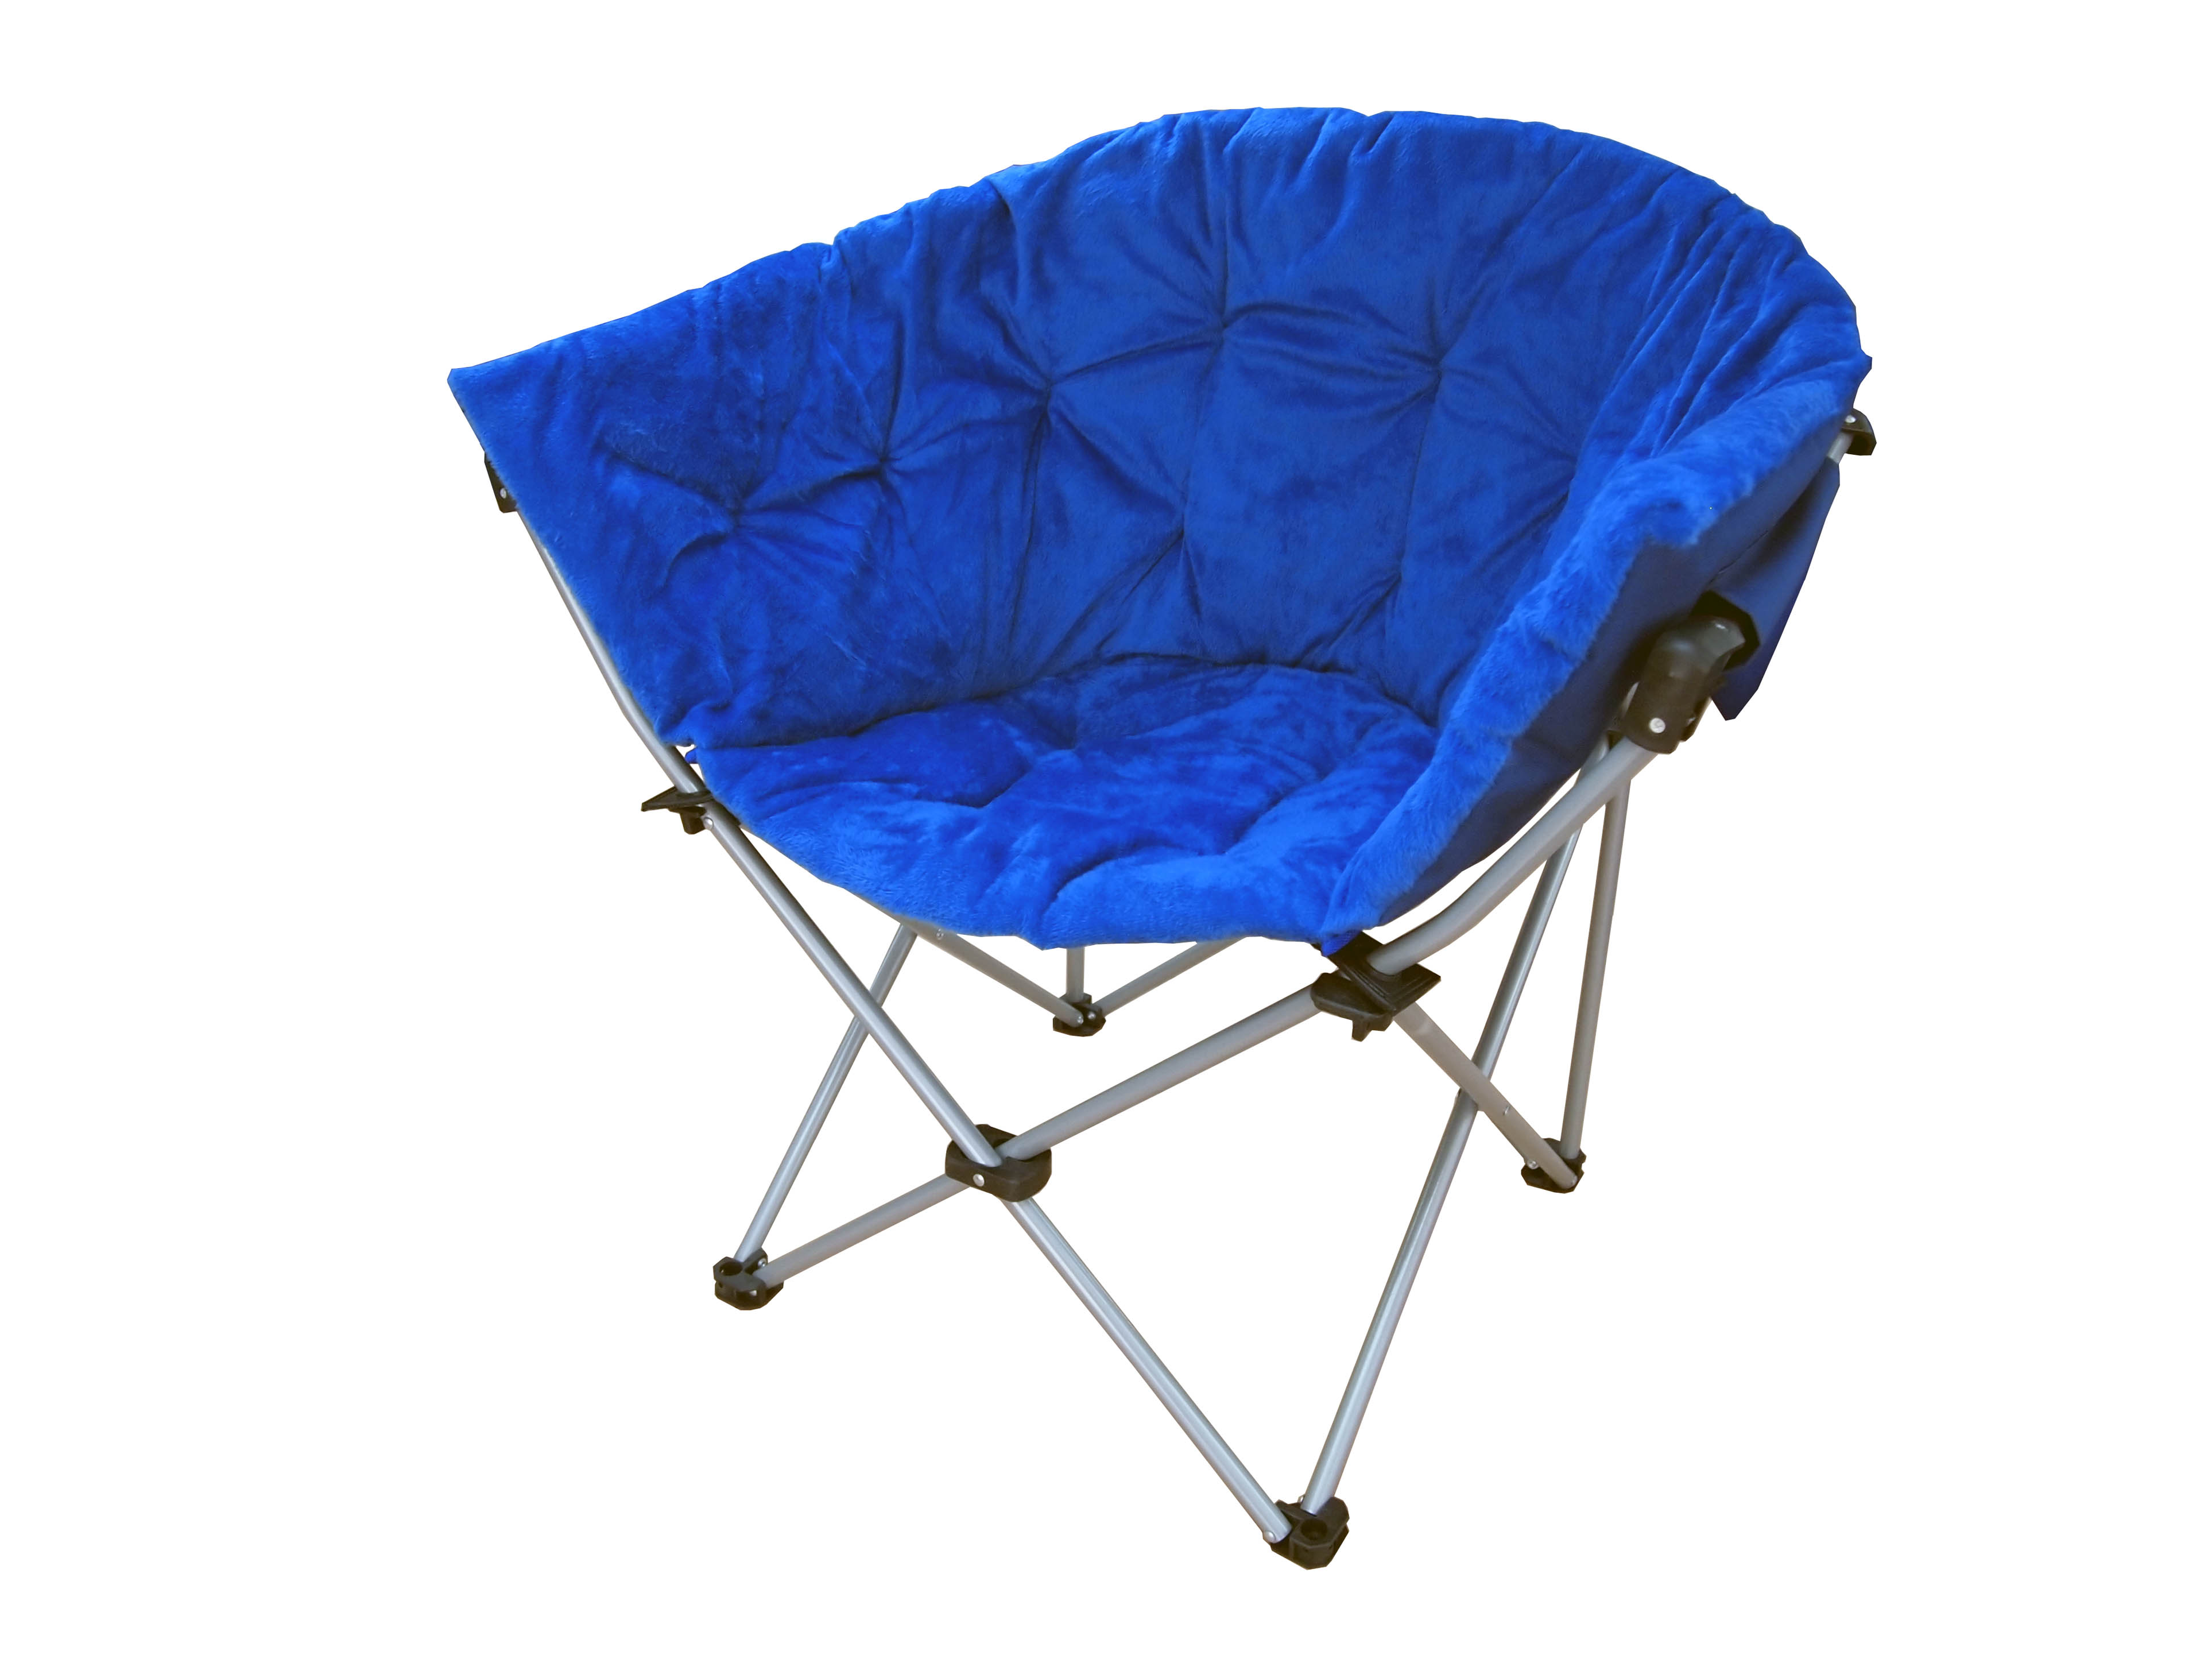 Moon Chair Folding Camping Hiking Garden Indoor Outdoor Fishing Foldable Fold